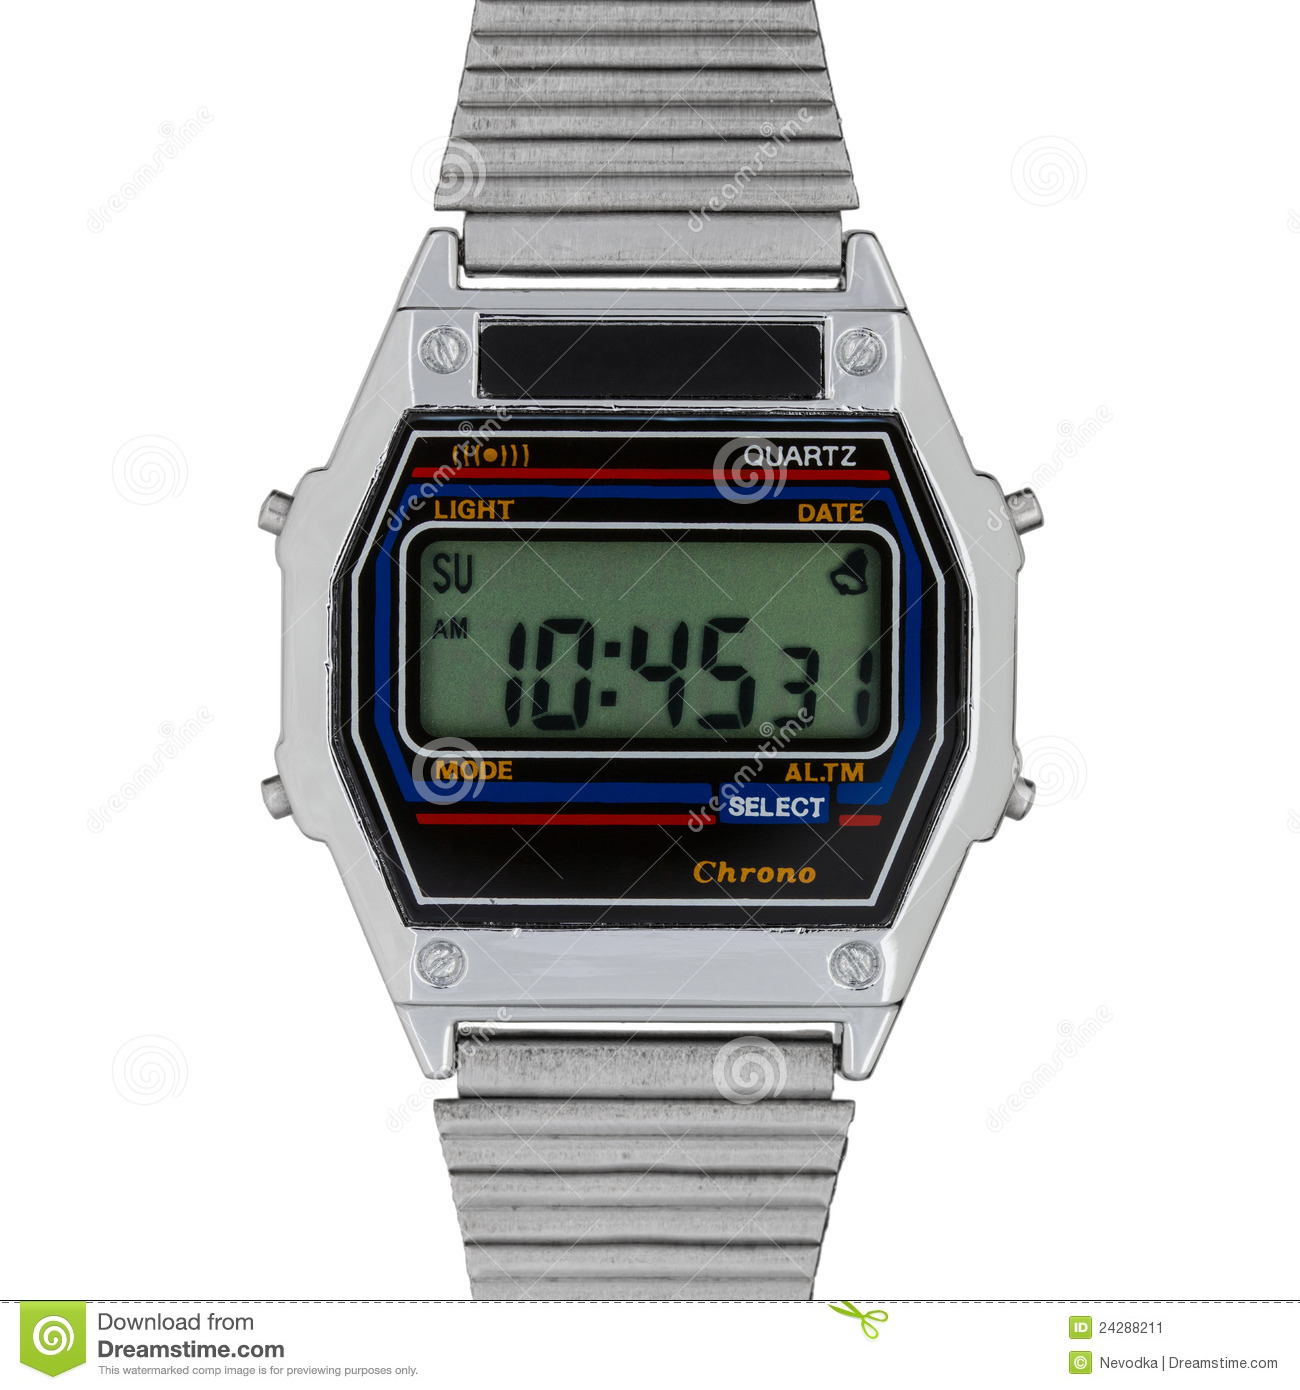 how to change the time on a digital watch